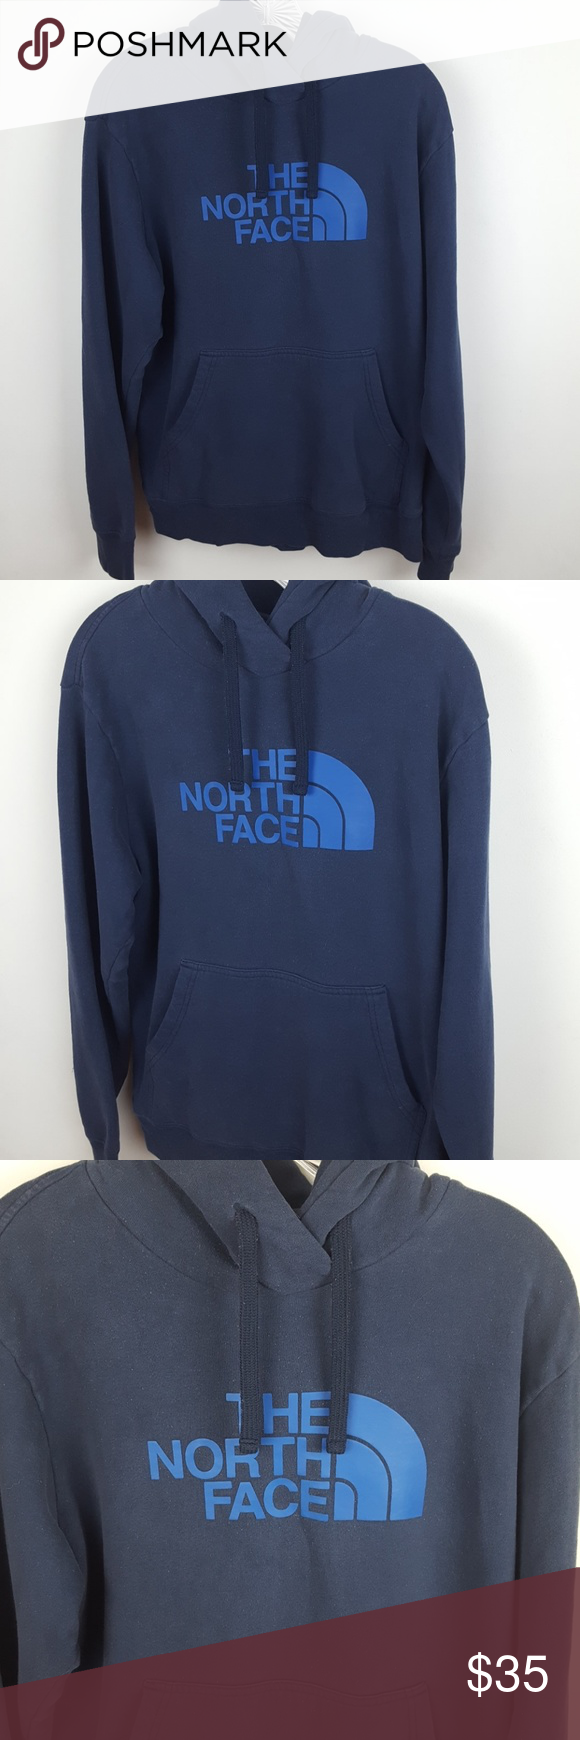 The North Face Hoodie The North Face Hoodie. Size Medium. Does have some pilling, but still a fantastic hoodie. Navy blue. Has The North Face in bold lettering on the front. More of a relaxed and loose fit. Nice quality! Would be an awesome hoodie to have for this winter.  #0616 ◾Length 26.5